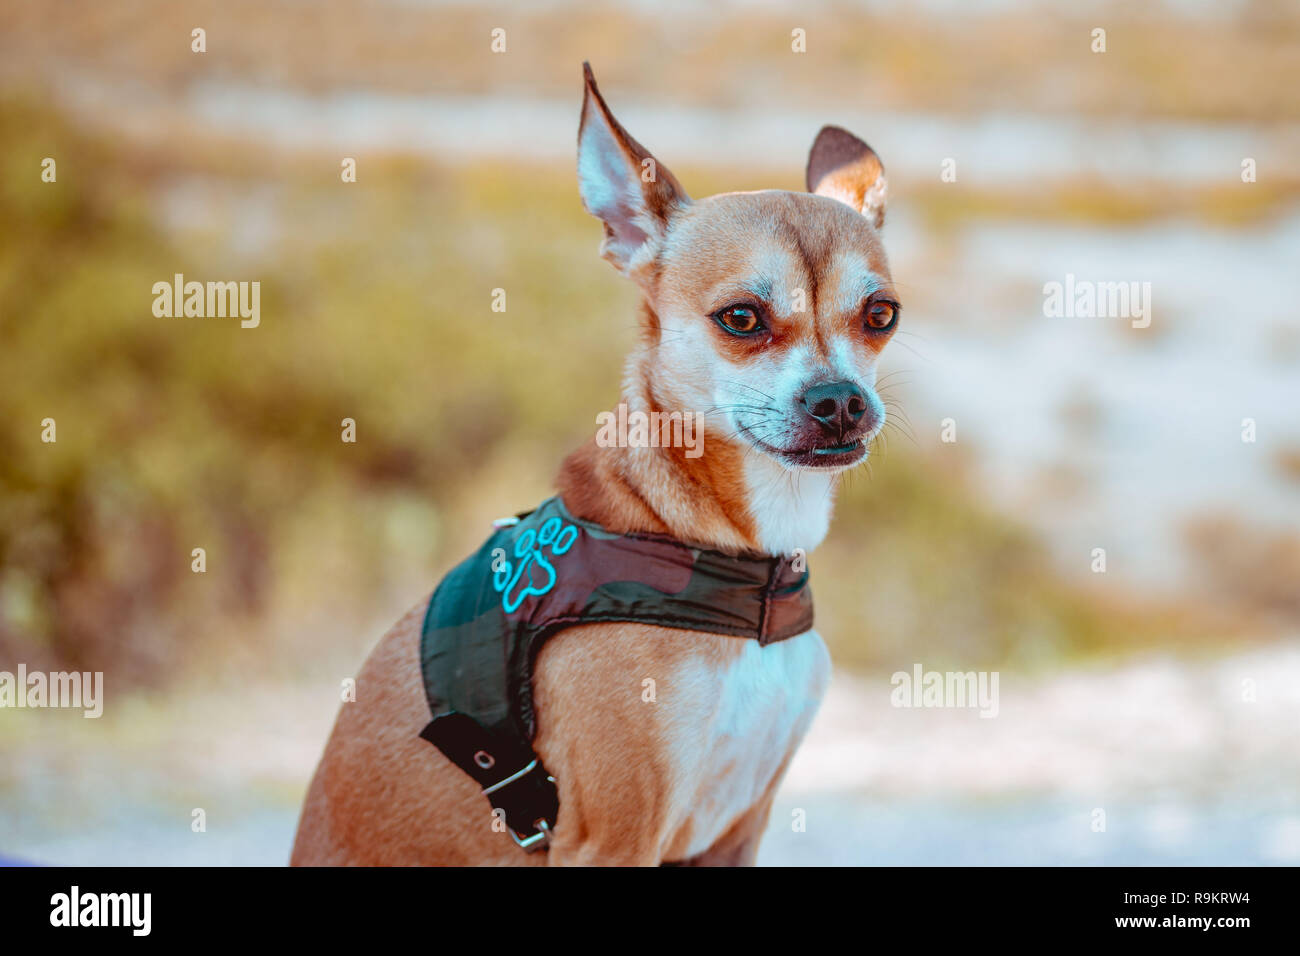 Chihuahua dog with blured background Stock Photo